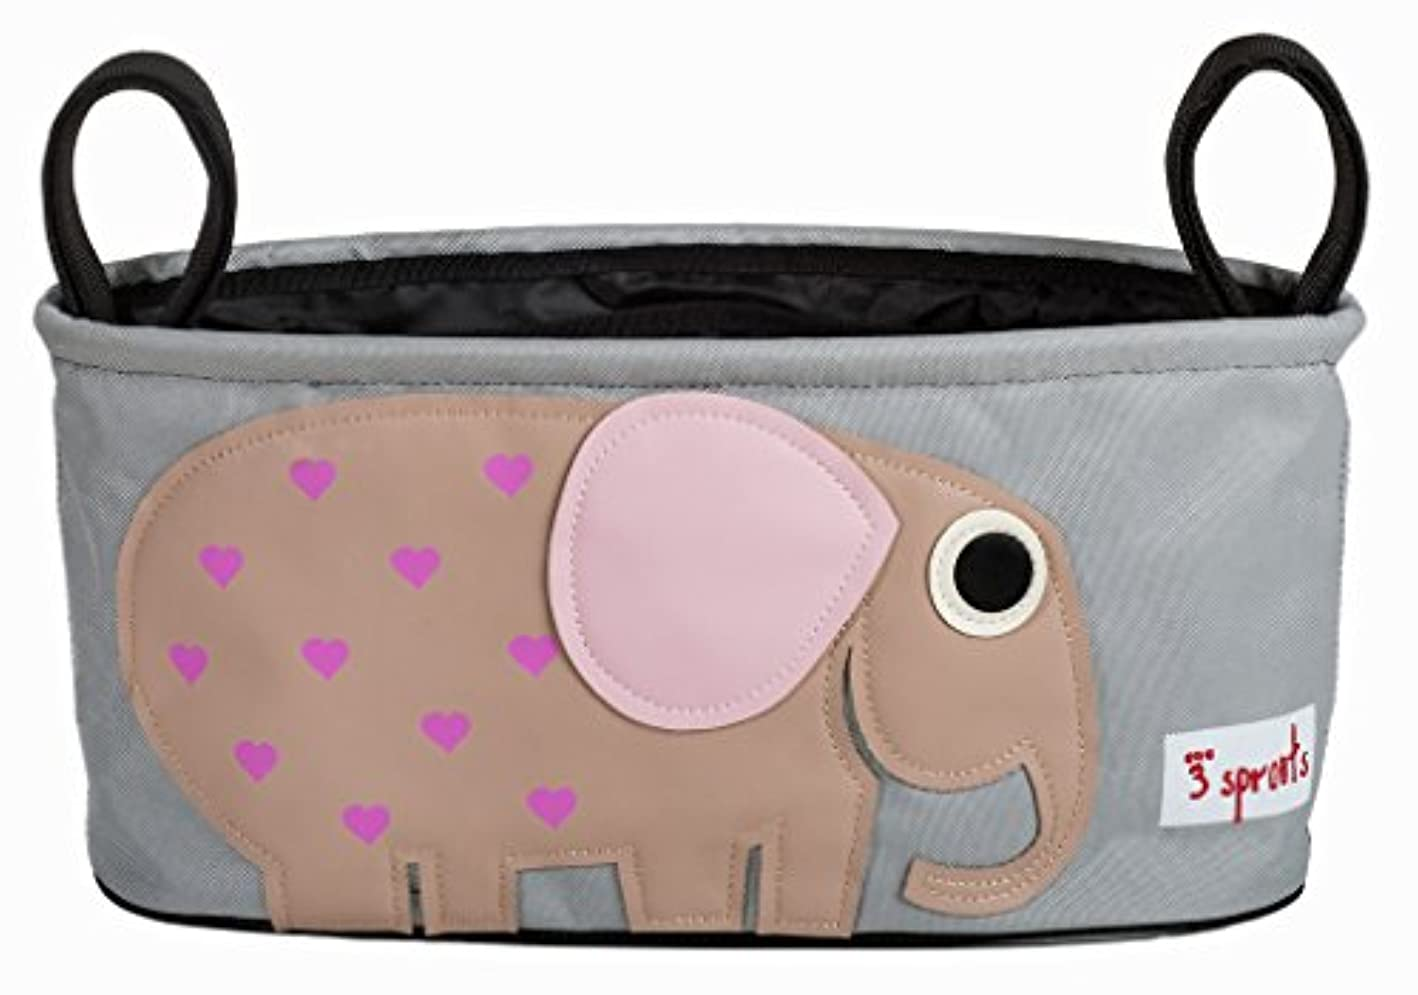 3 Sprouts Universal Stroller Organizer - Baby Jogger Caddy with Cup Holder